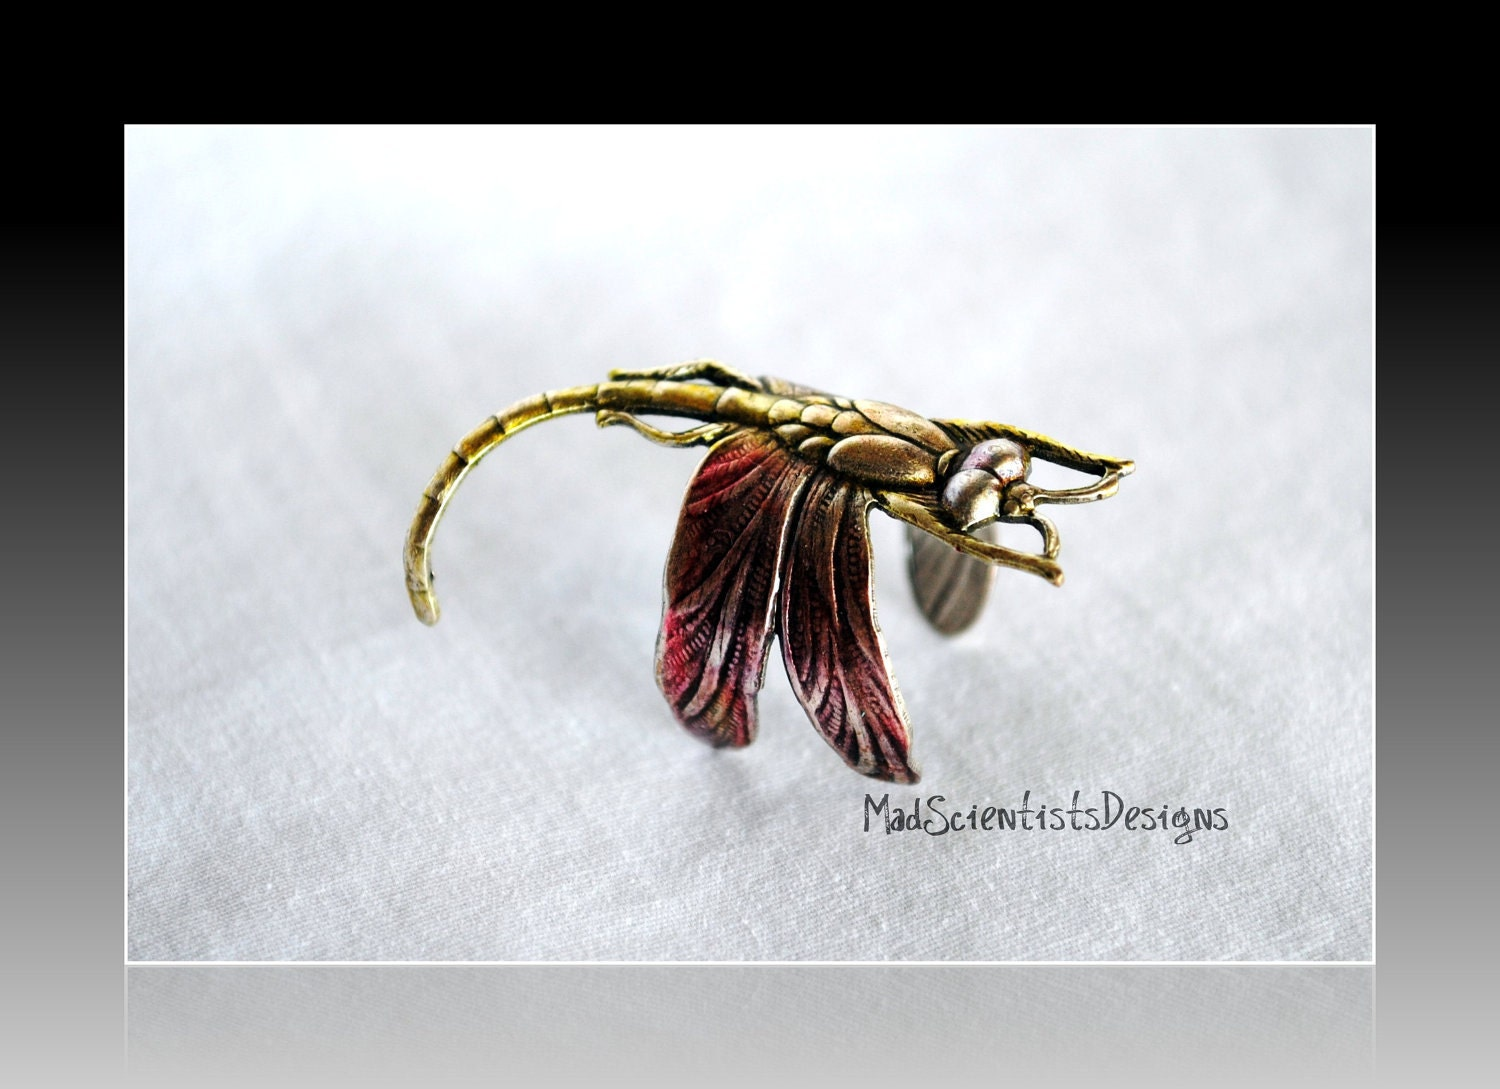 Colorful Dragonfly Ring 001 Neo Victorian Nature Inspired by MadScientistsDesigns